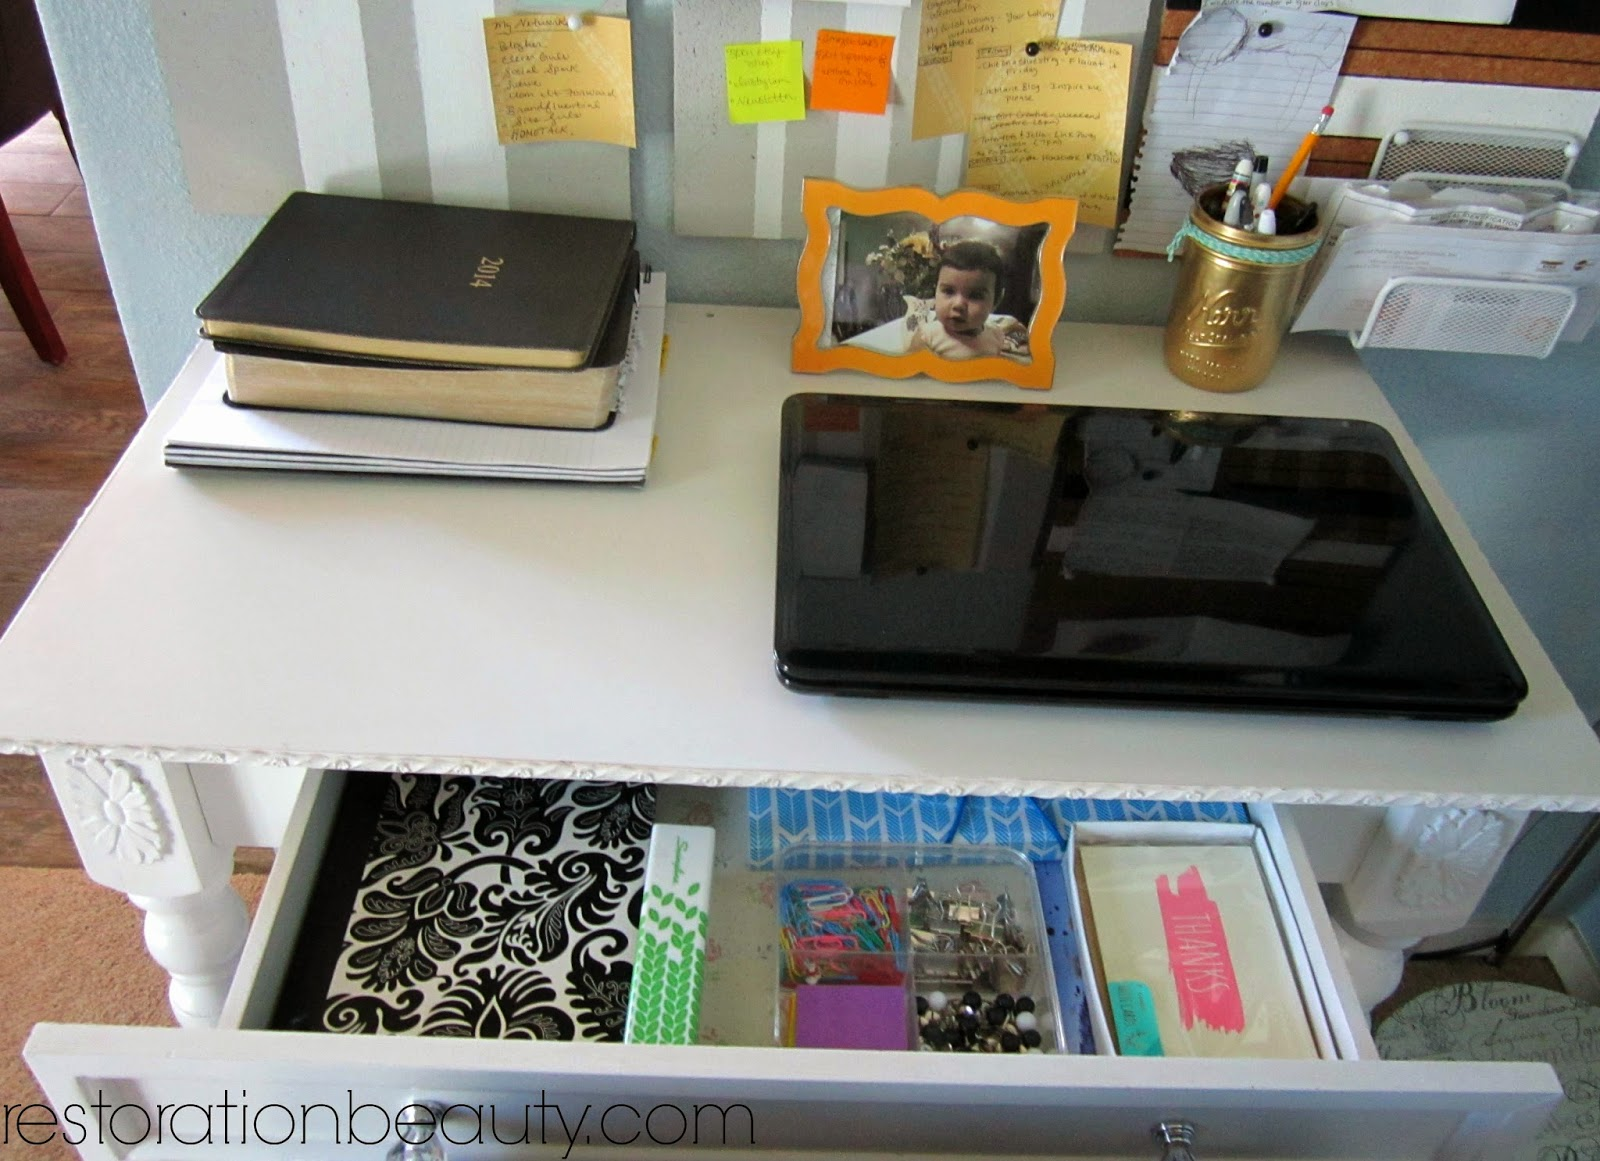 organize office space. restoration beauty how to organize a small officework space tips u0026 tricks office m